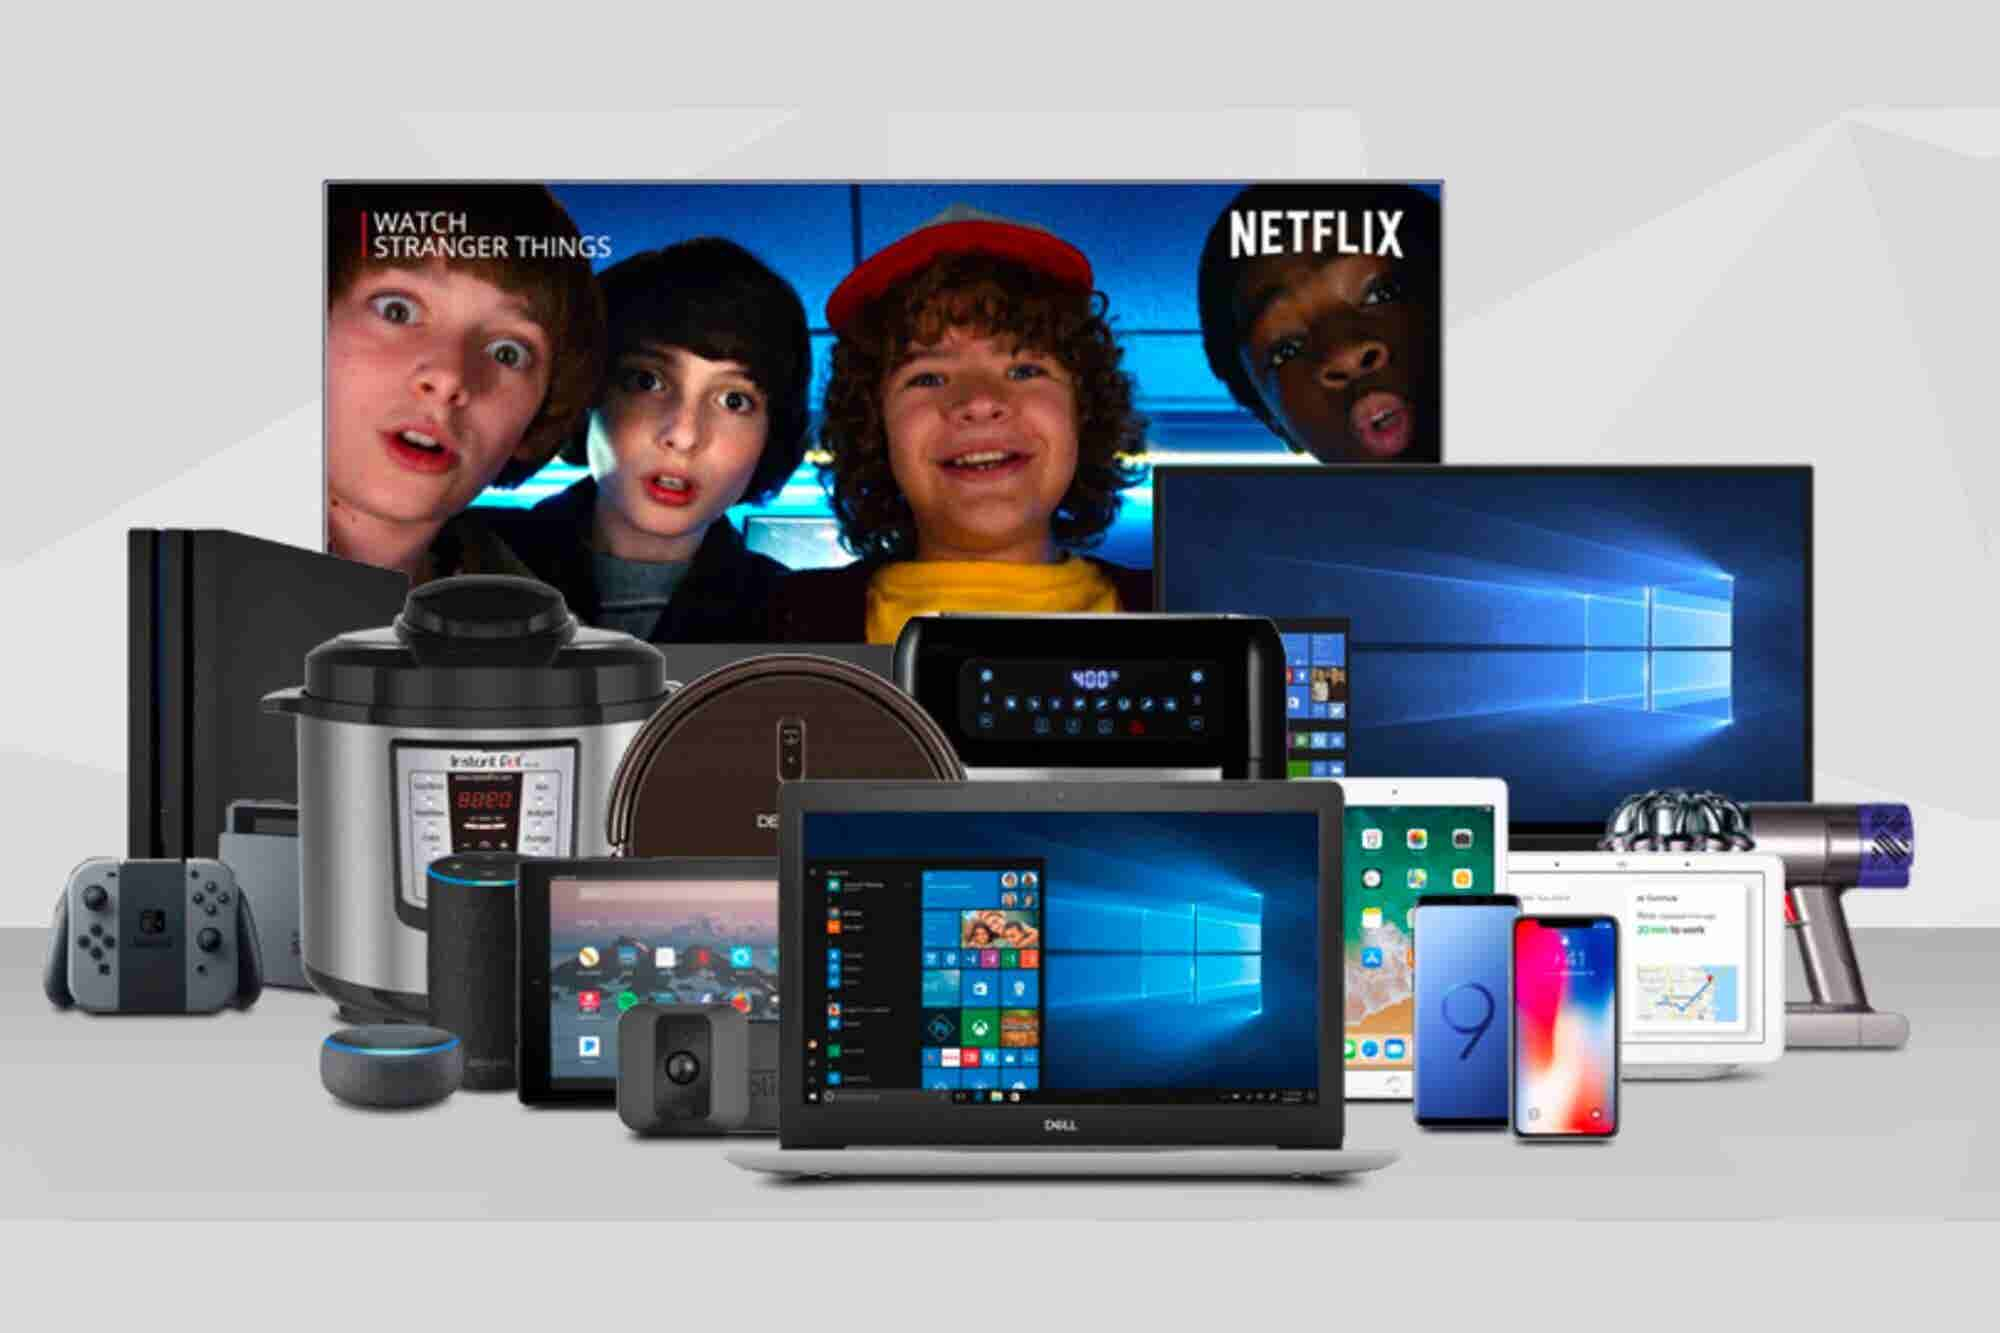 The Best Cyber Monday Tech Deals: iPad, Roku, 4K TVs and More